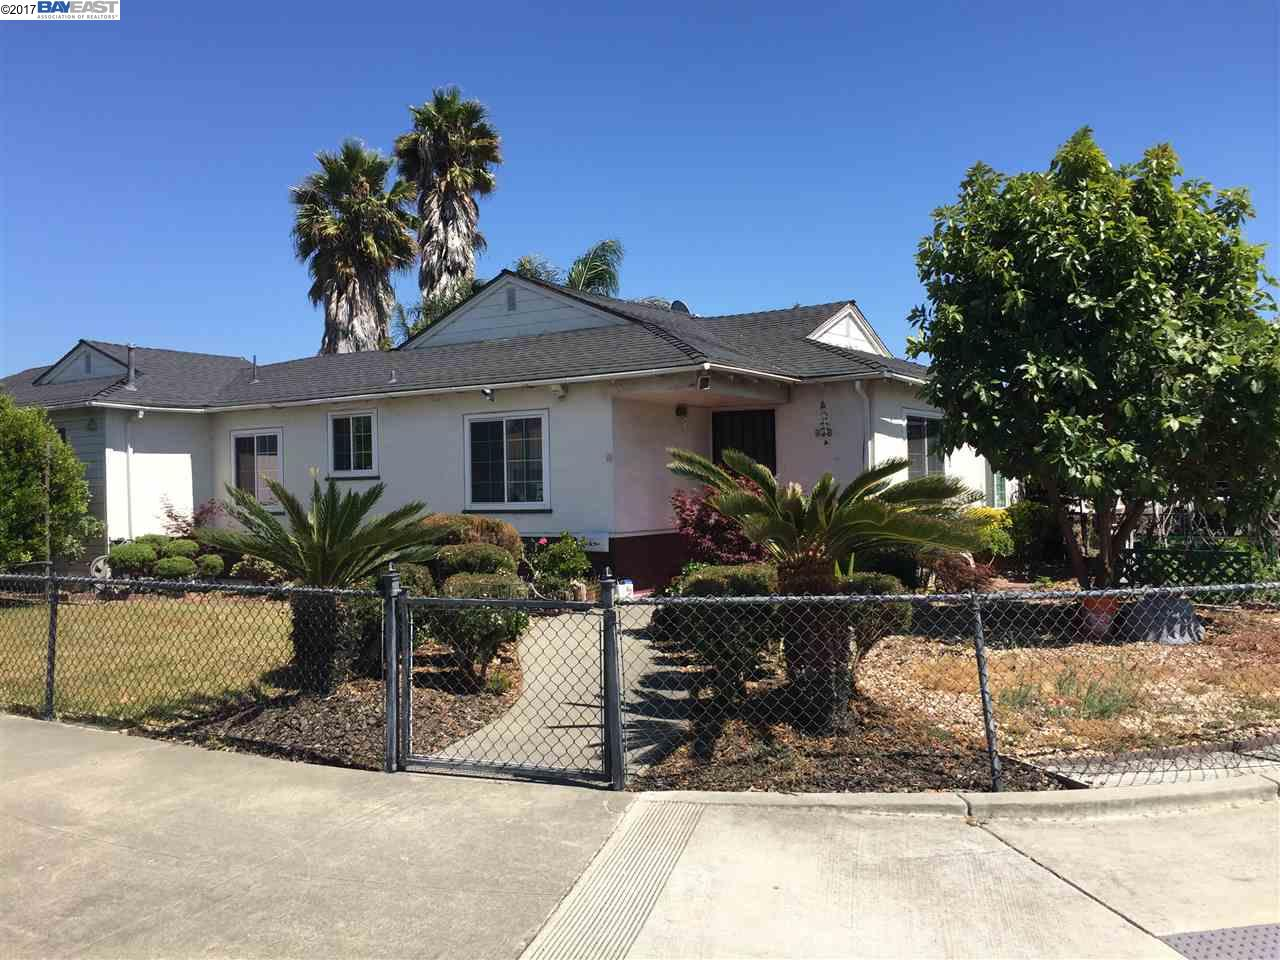 958 Pope Way | HAYWARD | 1543 | 94545